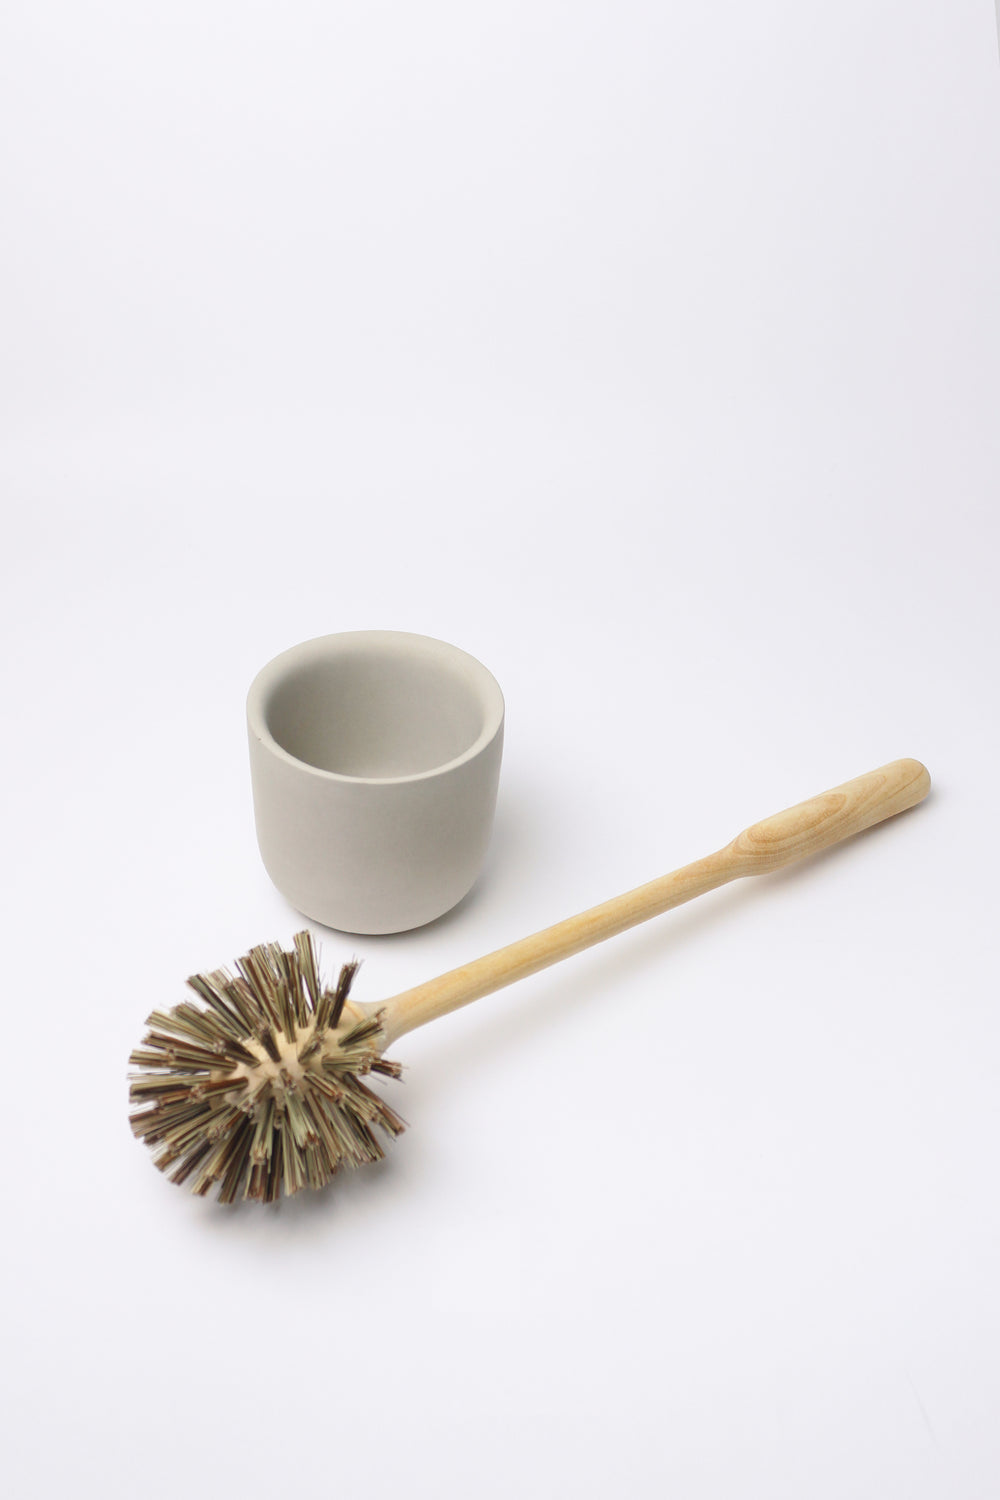 Toilet Brush with Concrete Cup